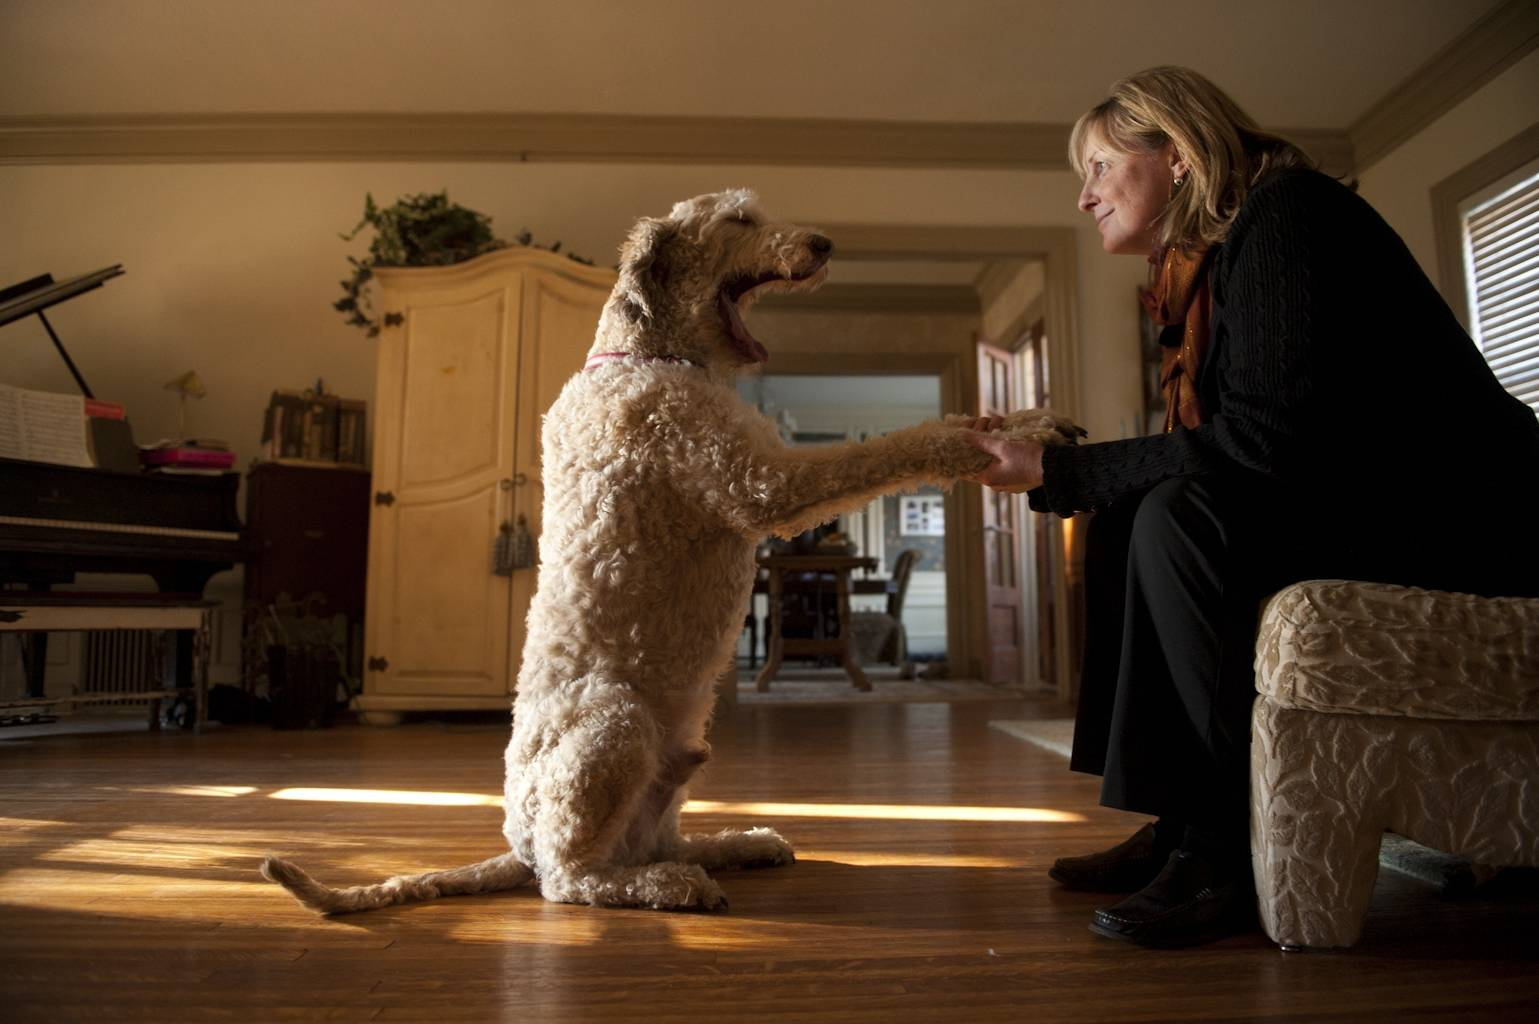 Photo: A woman and her dog, Muldoon.